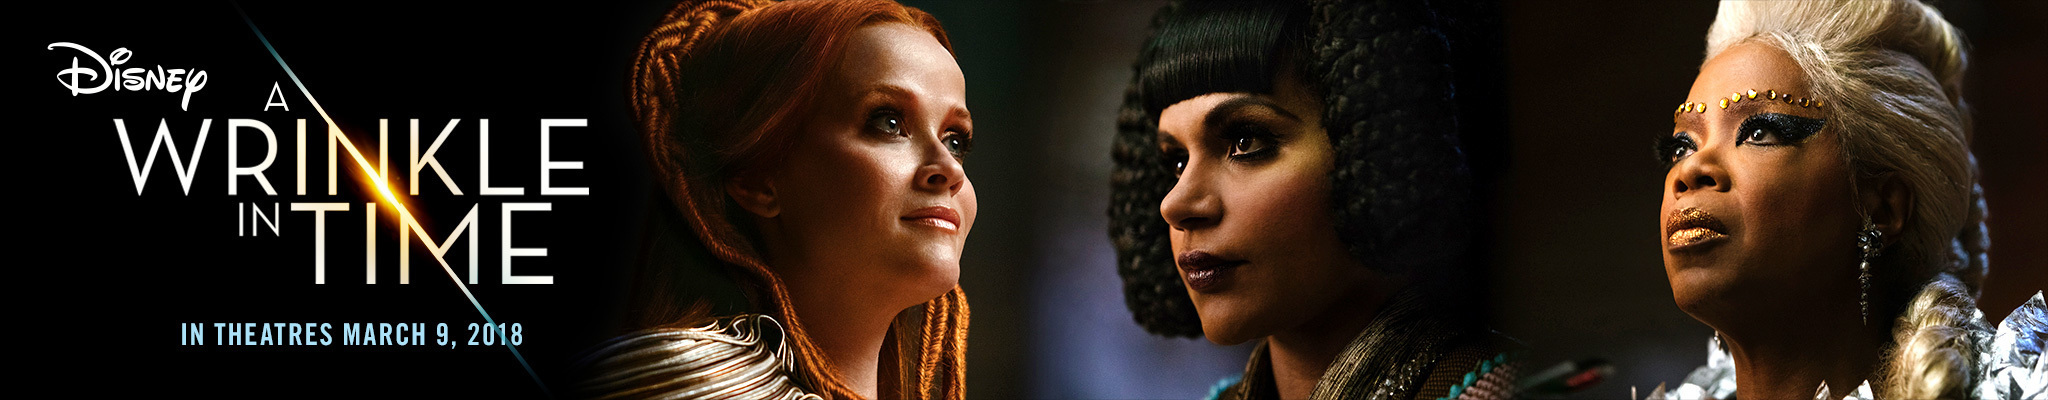 wrinkle in time banner.jpeg